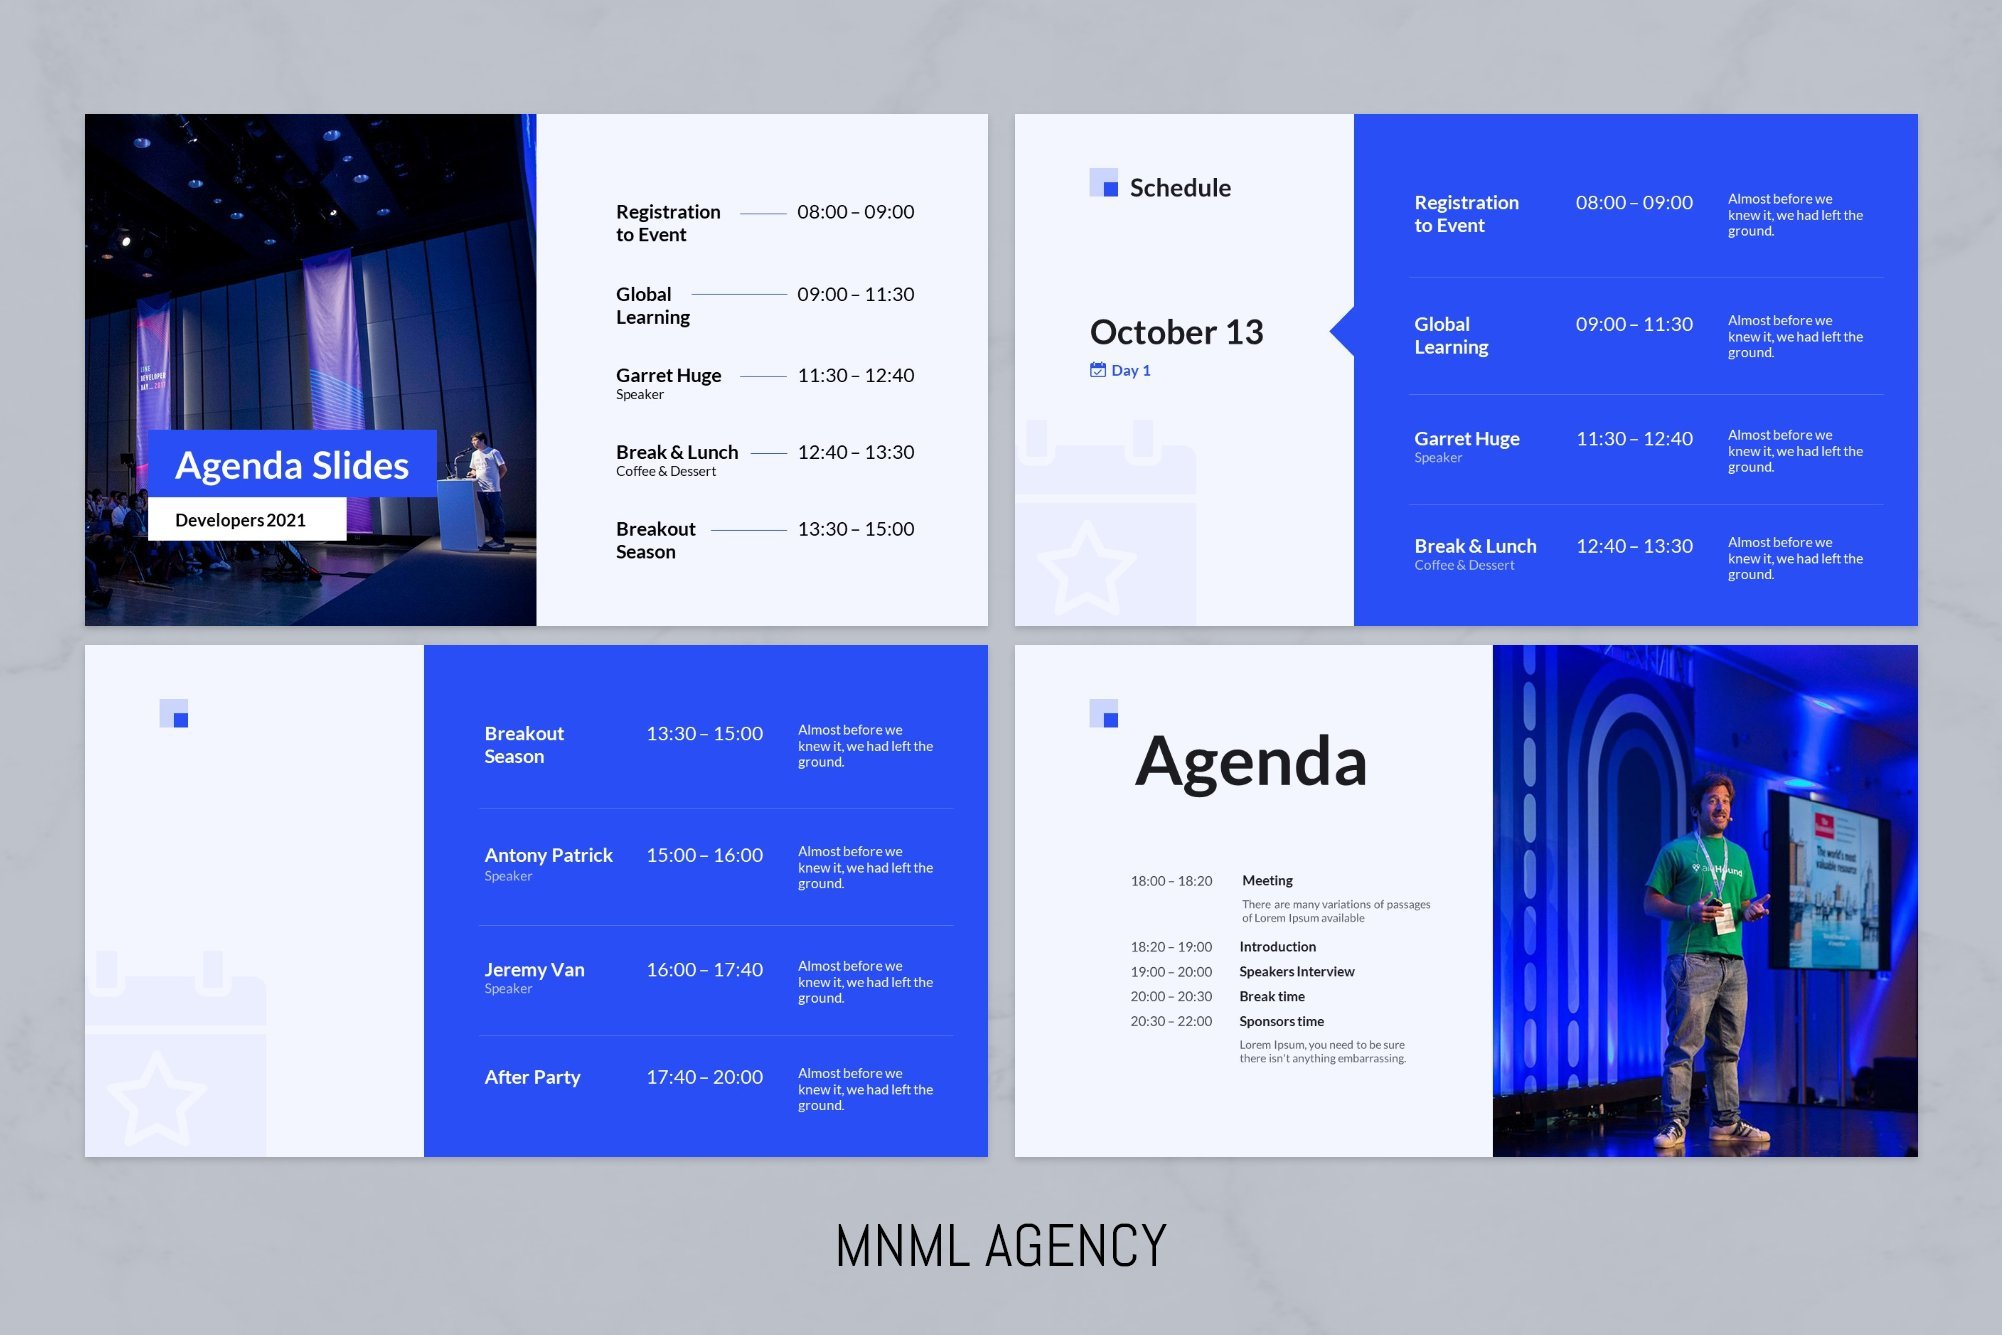 Agenda slides with detailed process during conference.